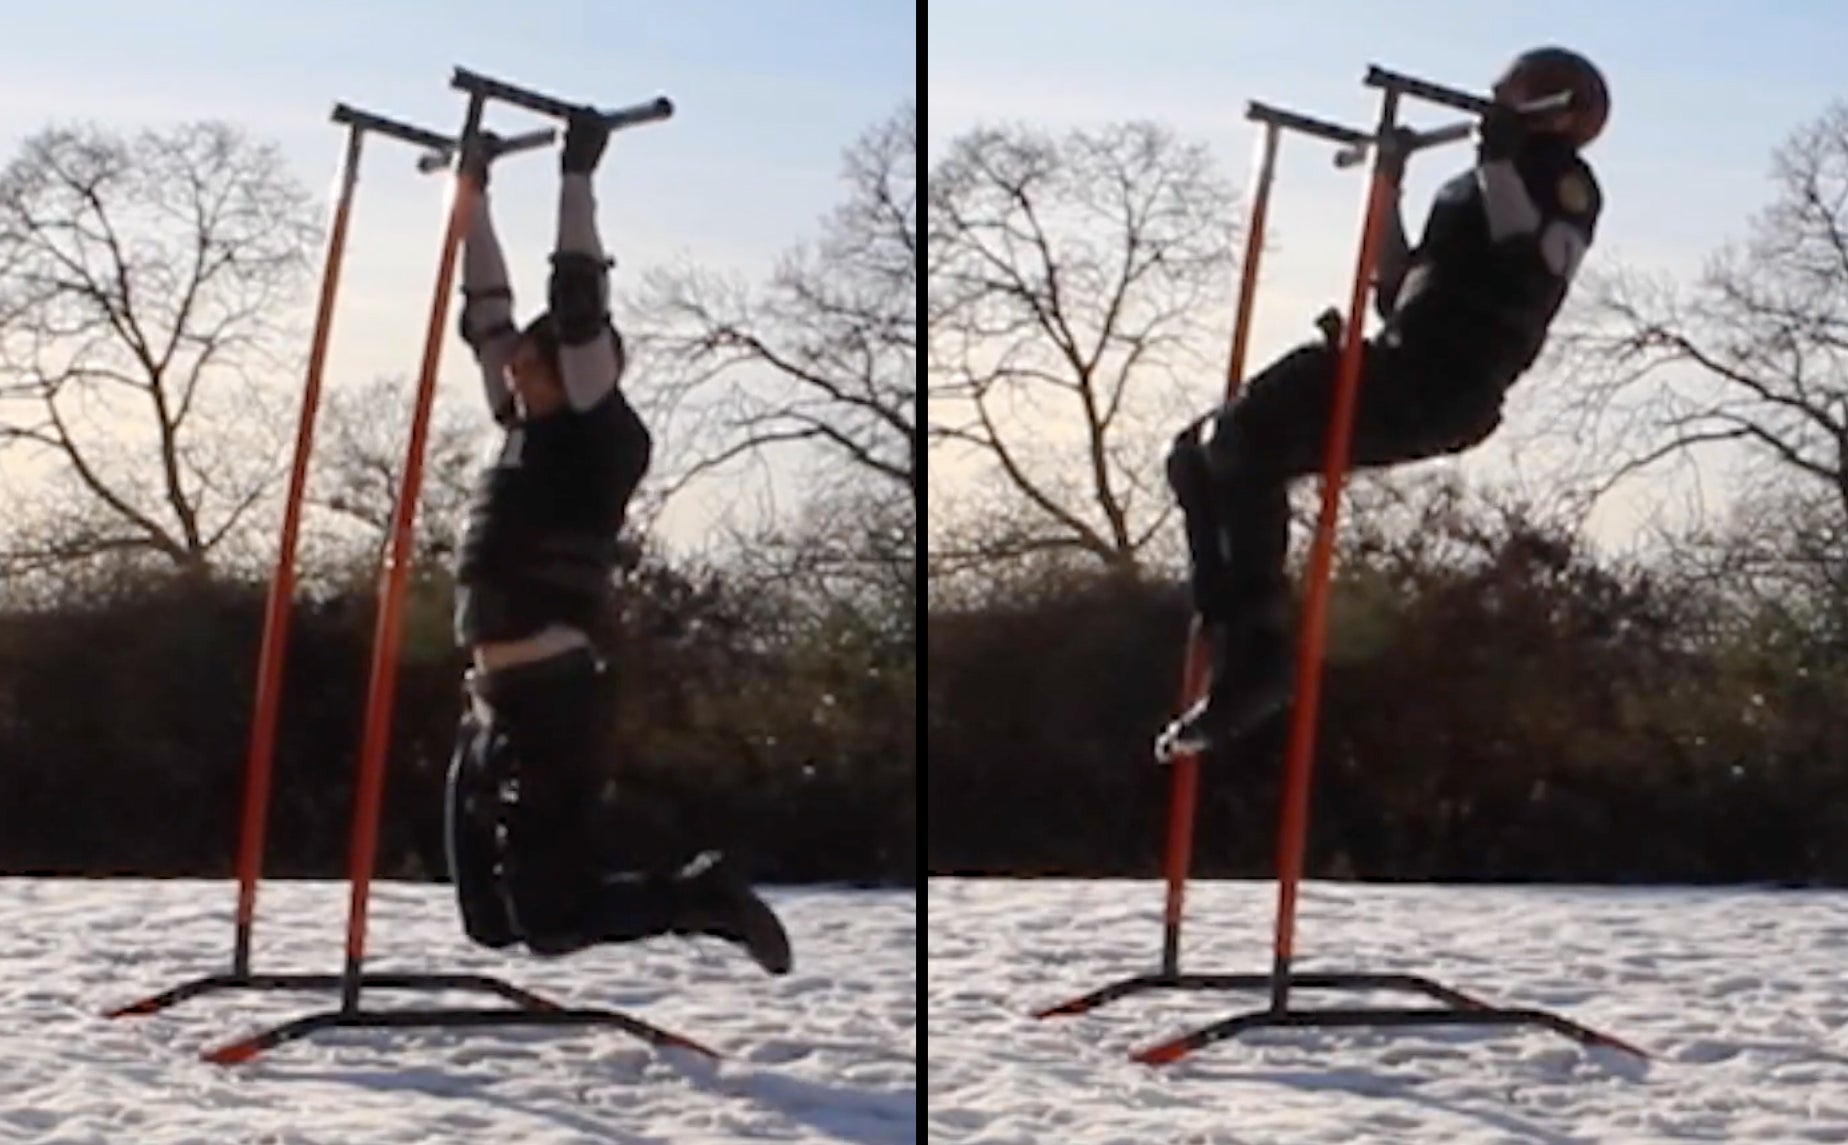 Leon S. Kennedy Resident Evil 2 Remake cosplay teaching the chin up in the snow for a raccoon city fitness workout